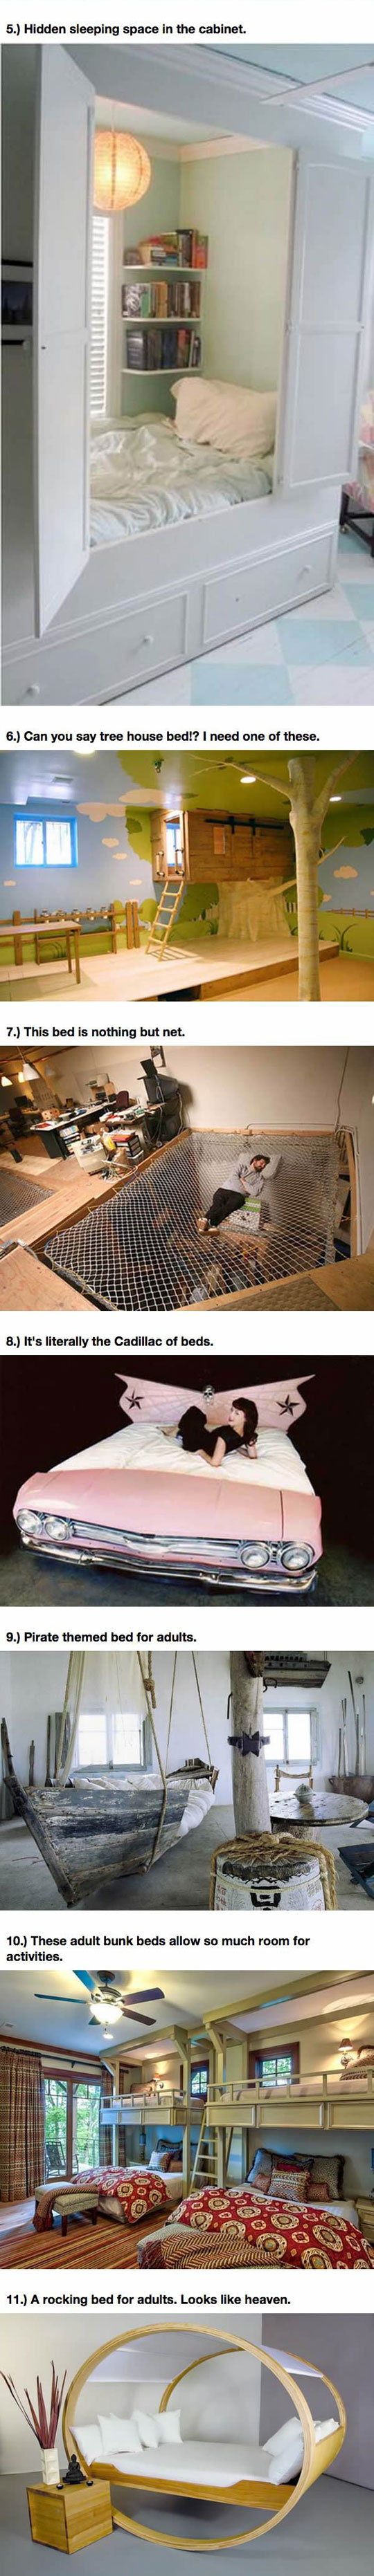 cool-weird-bed-design-sleep